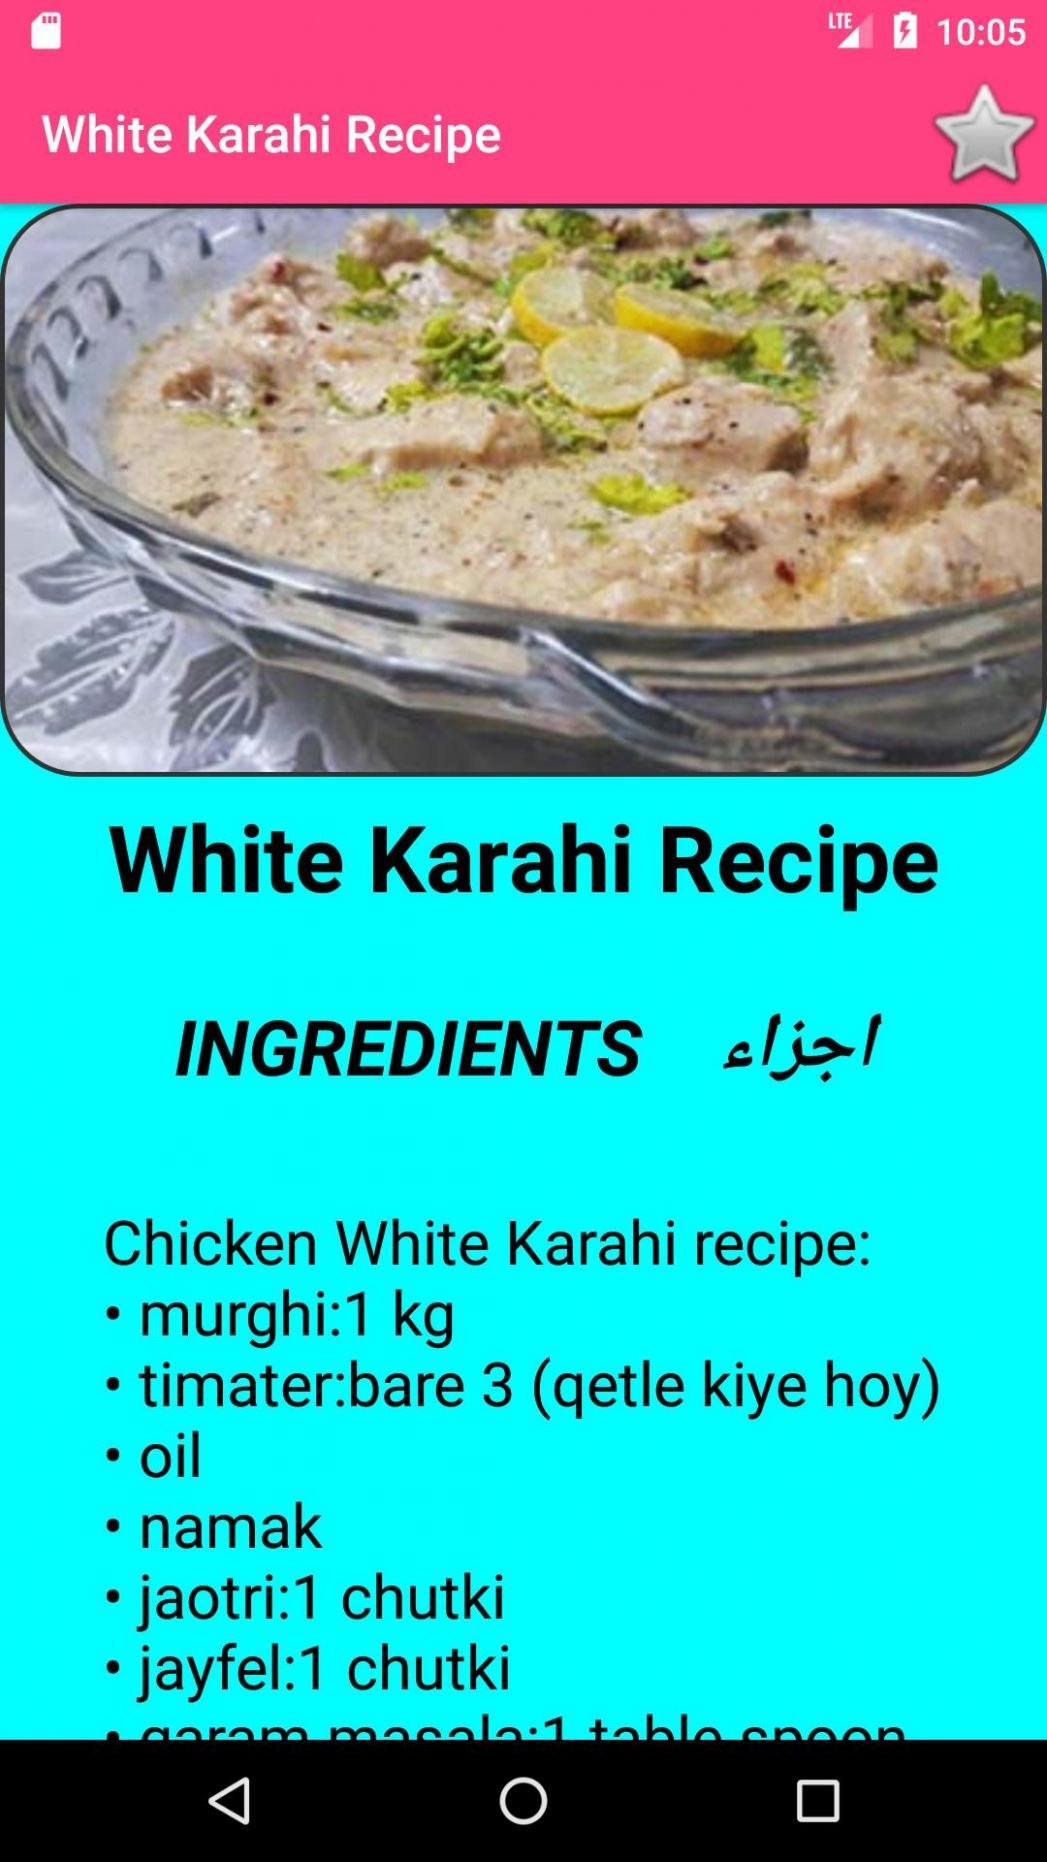 All Recipes in English and Urdu for Android - APK Download - All Recipes Urdu